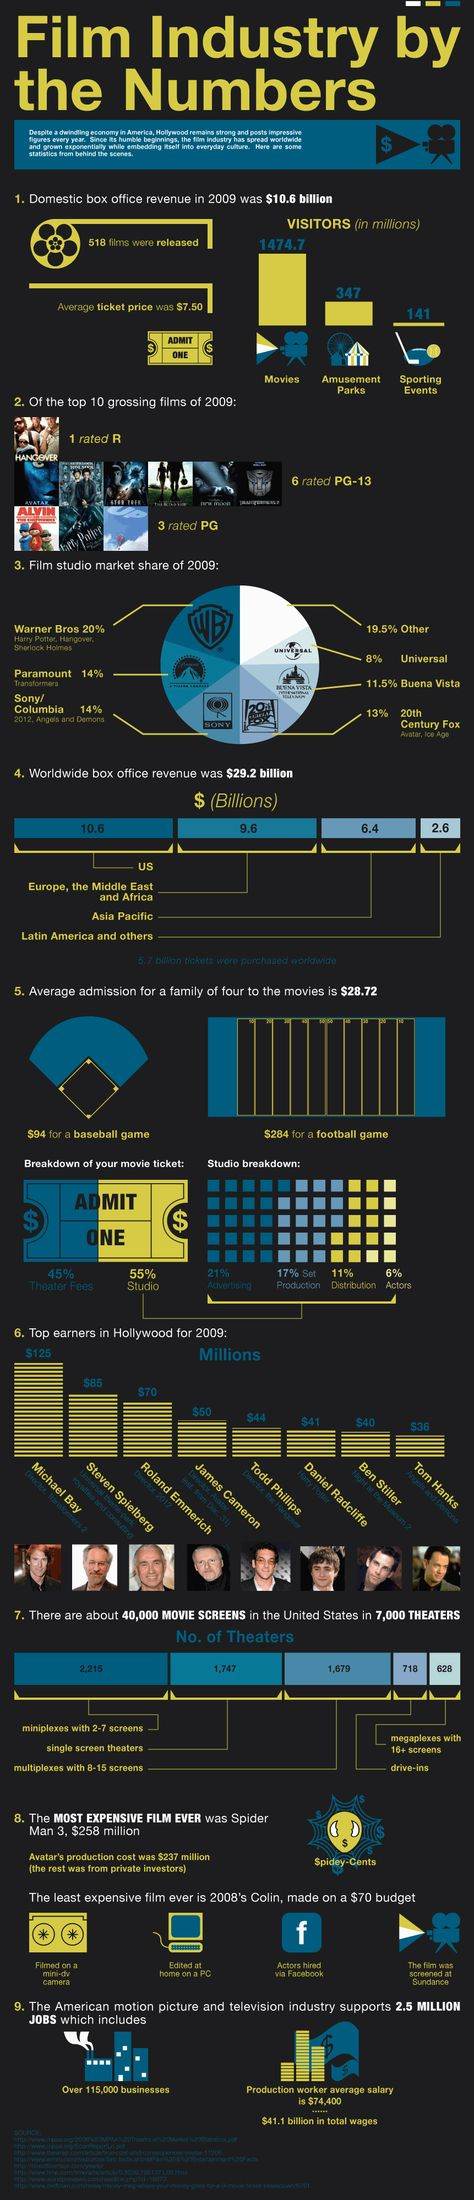 Film Industry by the Numbers infographic